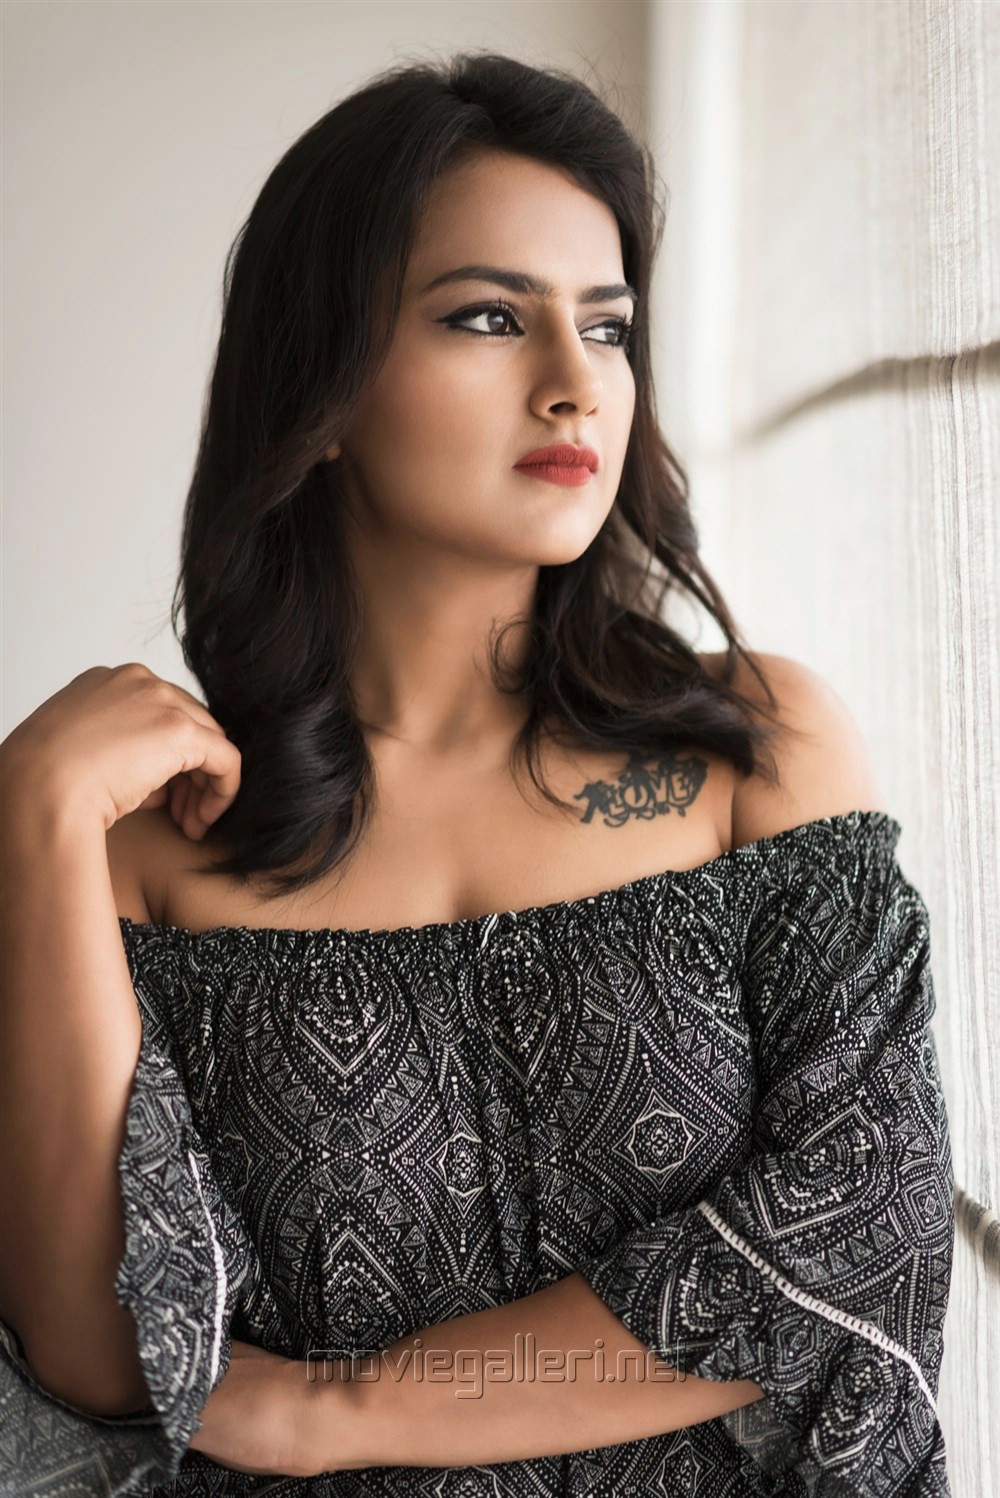 Tamil Actress Shraddha Srinath Photoshoot Pics